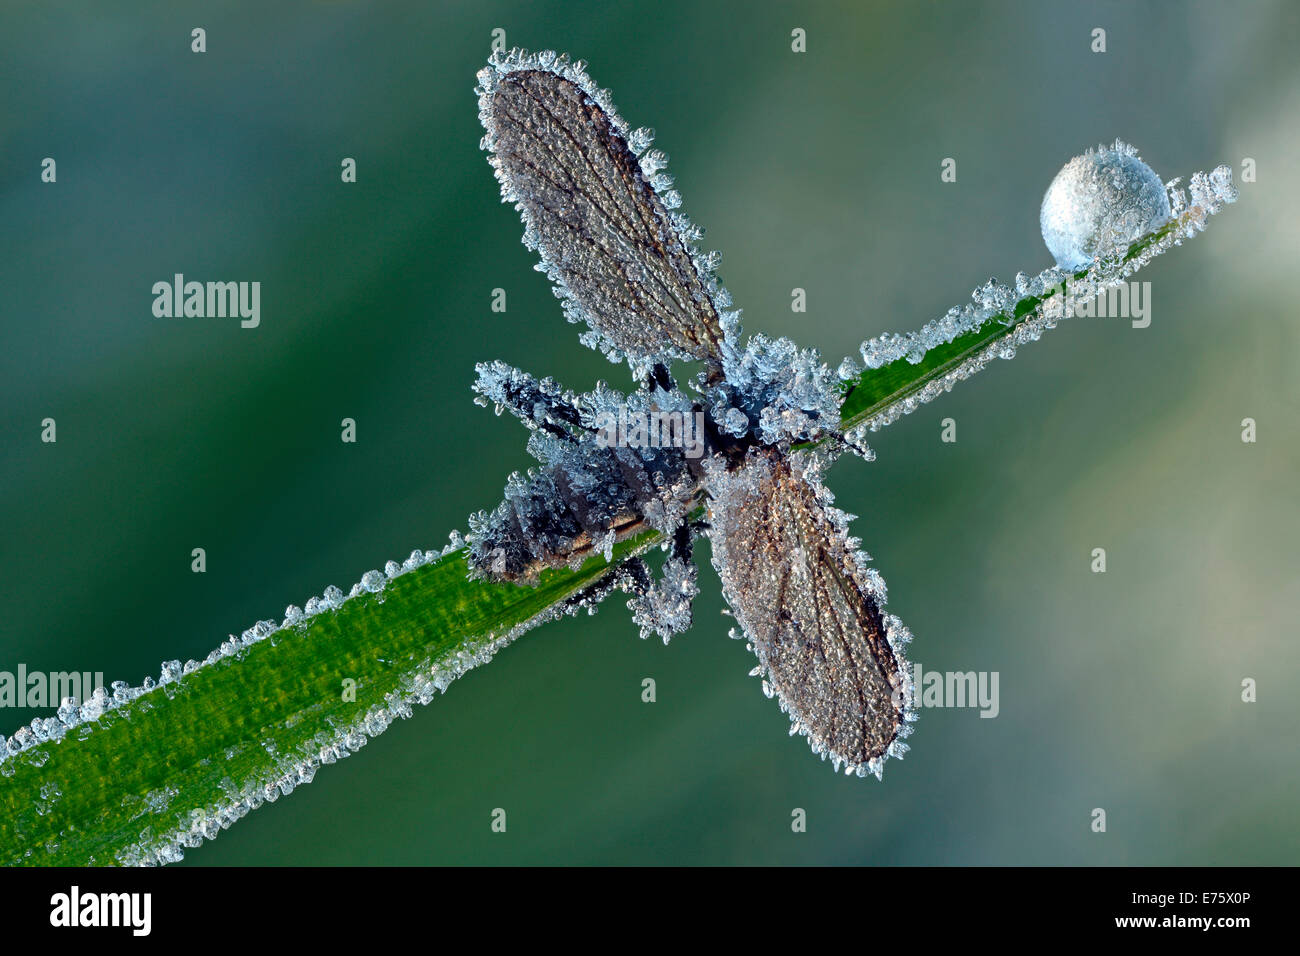 March Fly or St Mark's Fly (Bibio), with hoarfrost ice crystals, Hesse, Germany - Stock Image